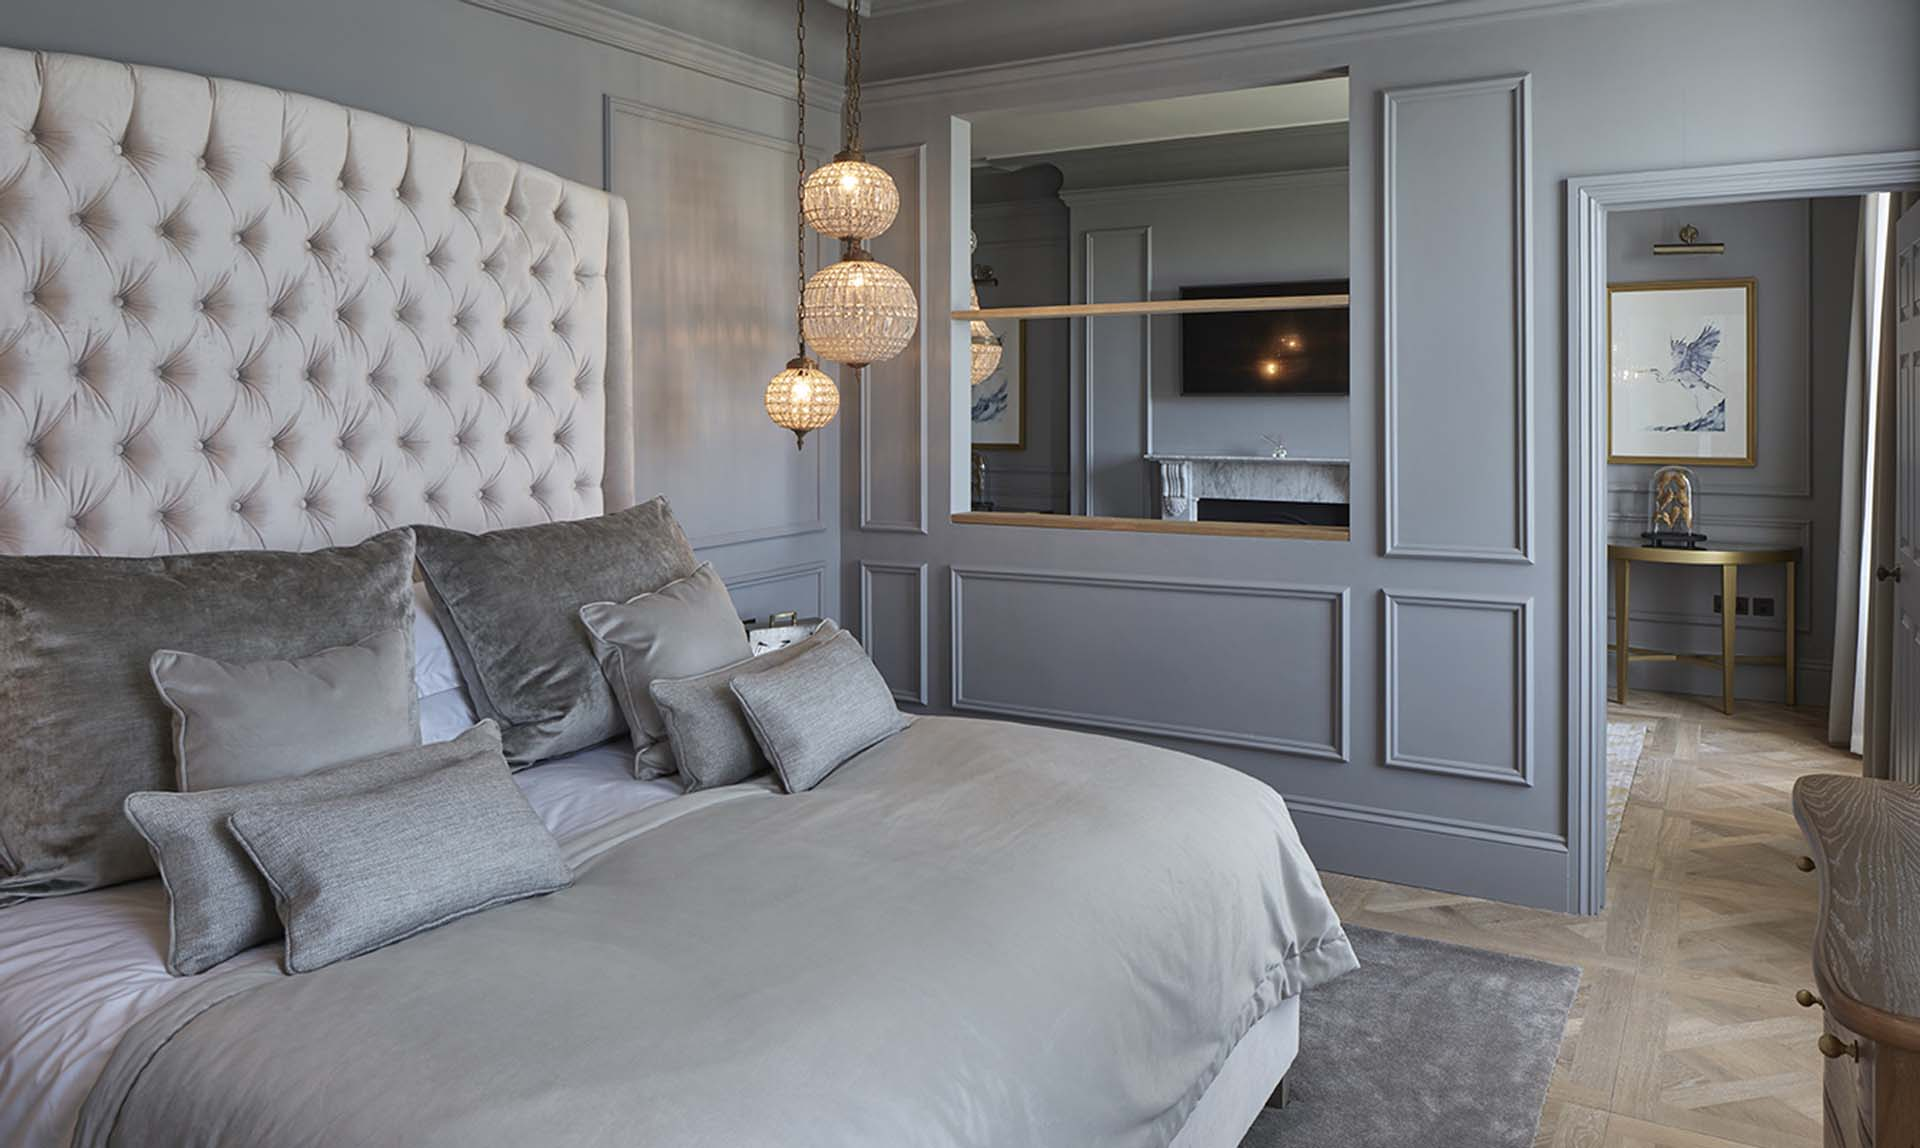 Interior design scheme for the bedrooms and suites of Lympstone Manor